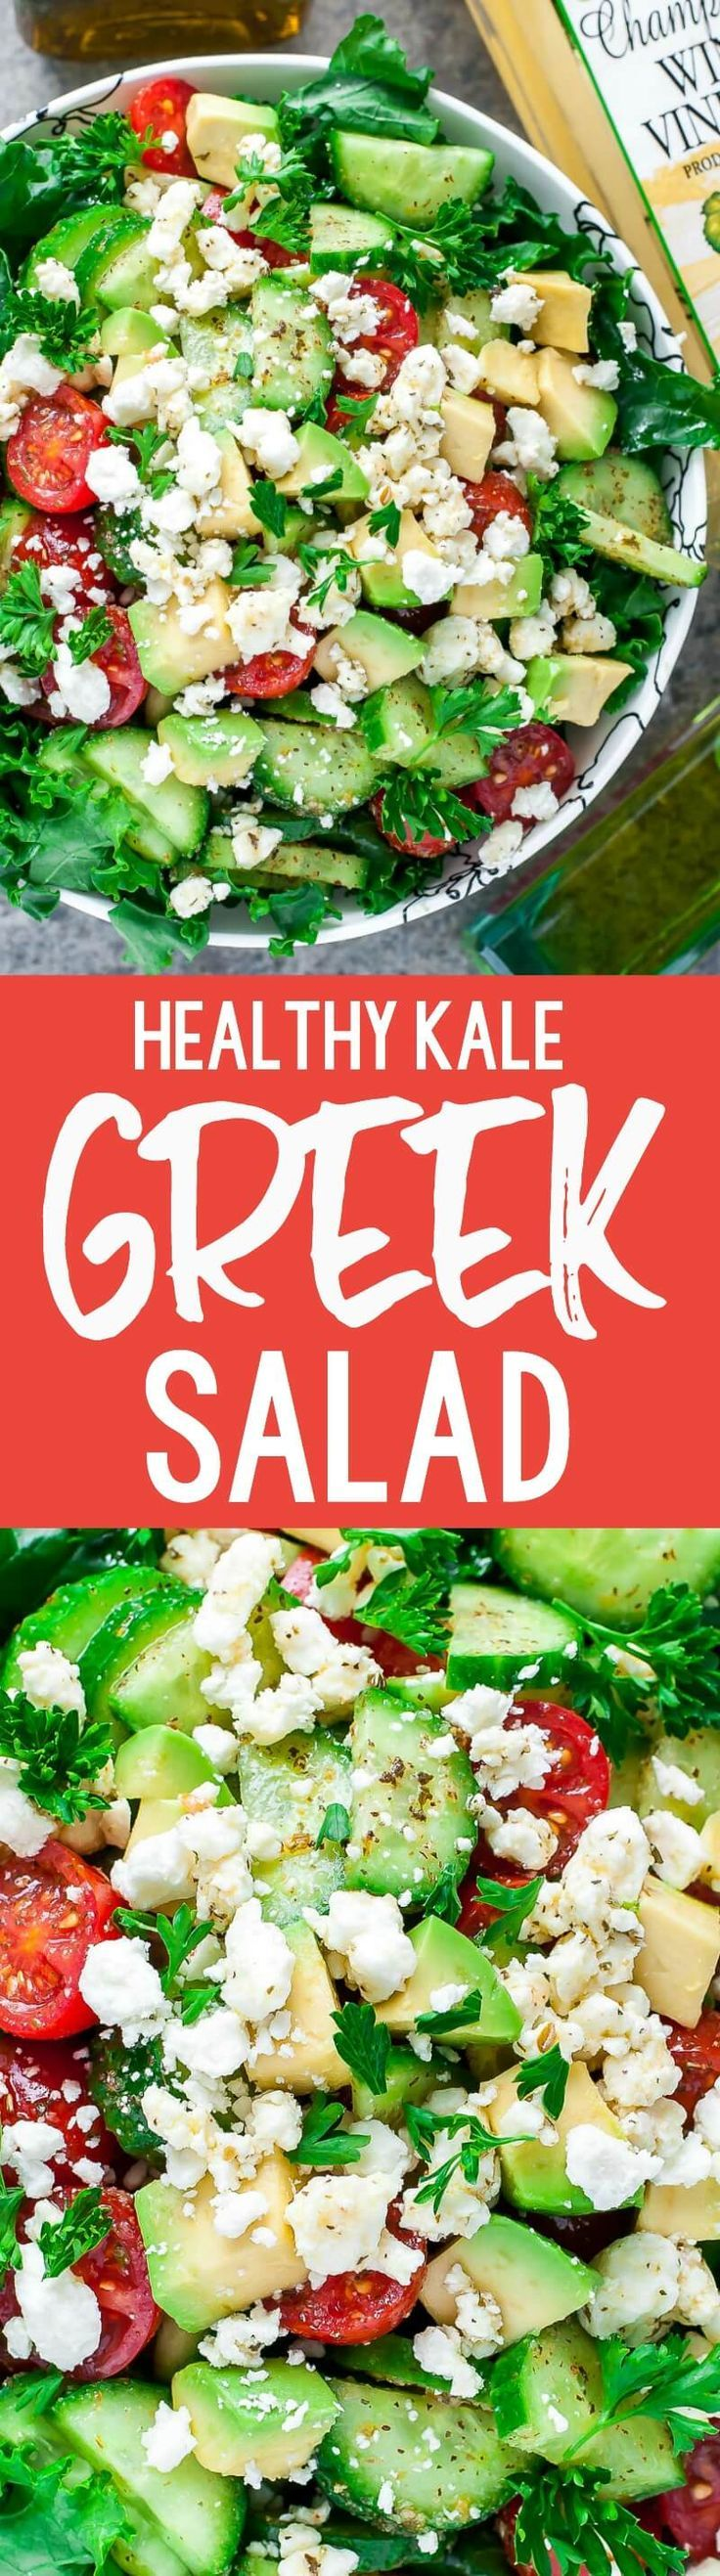 KALE YEAH! Chopped Greek Kale Salad with a healthy homemade Greek dressing you'll want to put on everything! #healthy #kale #salad